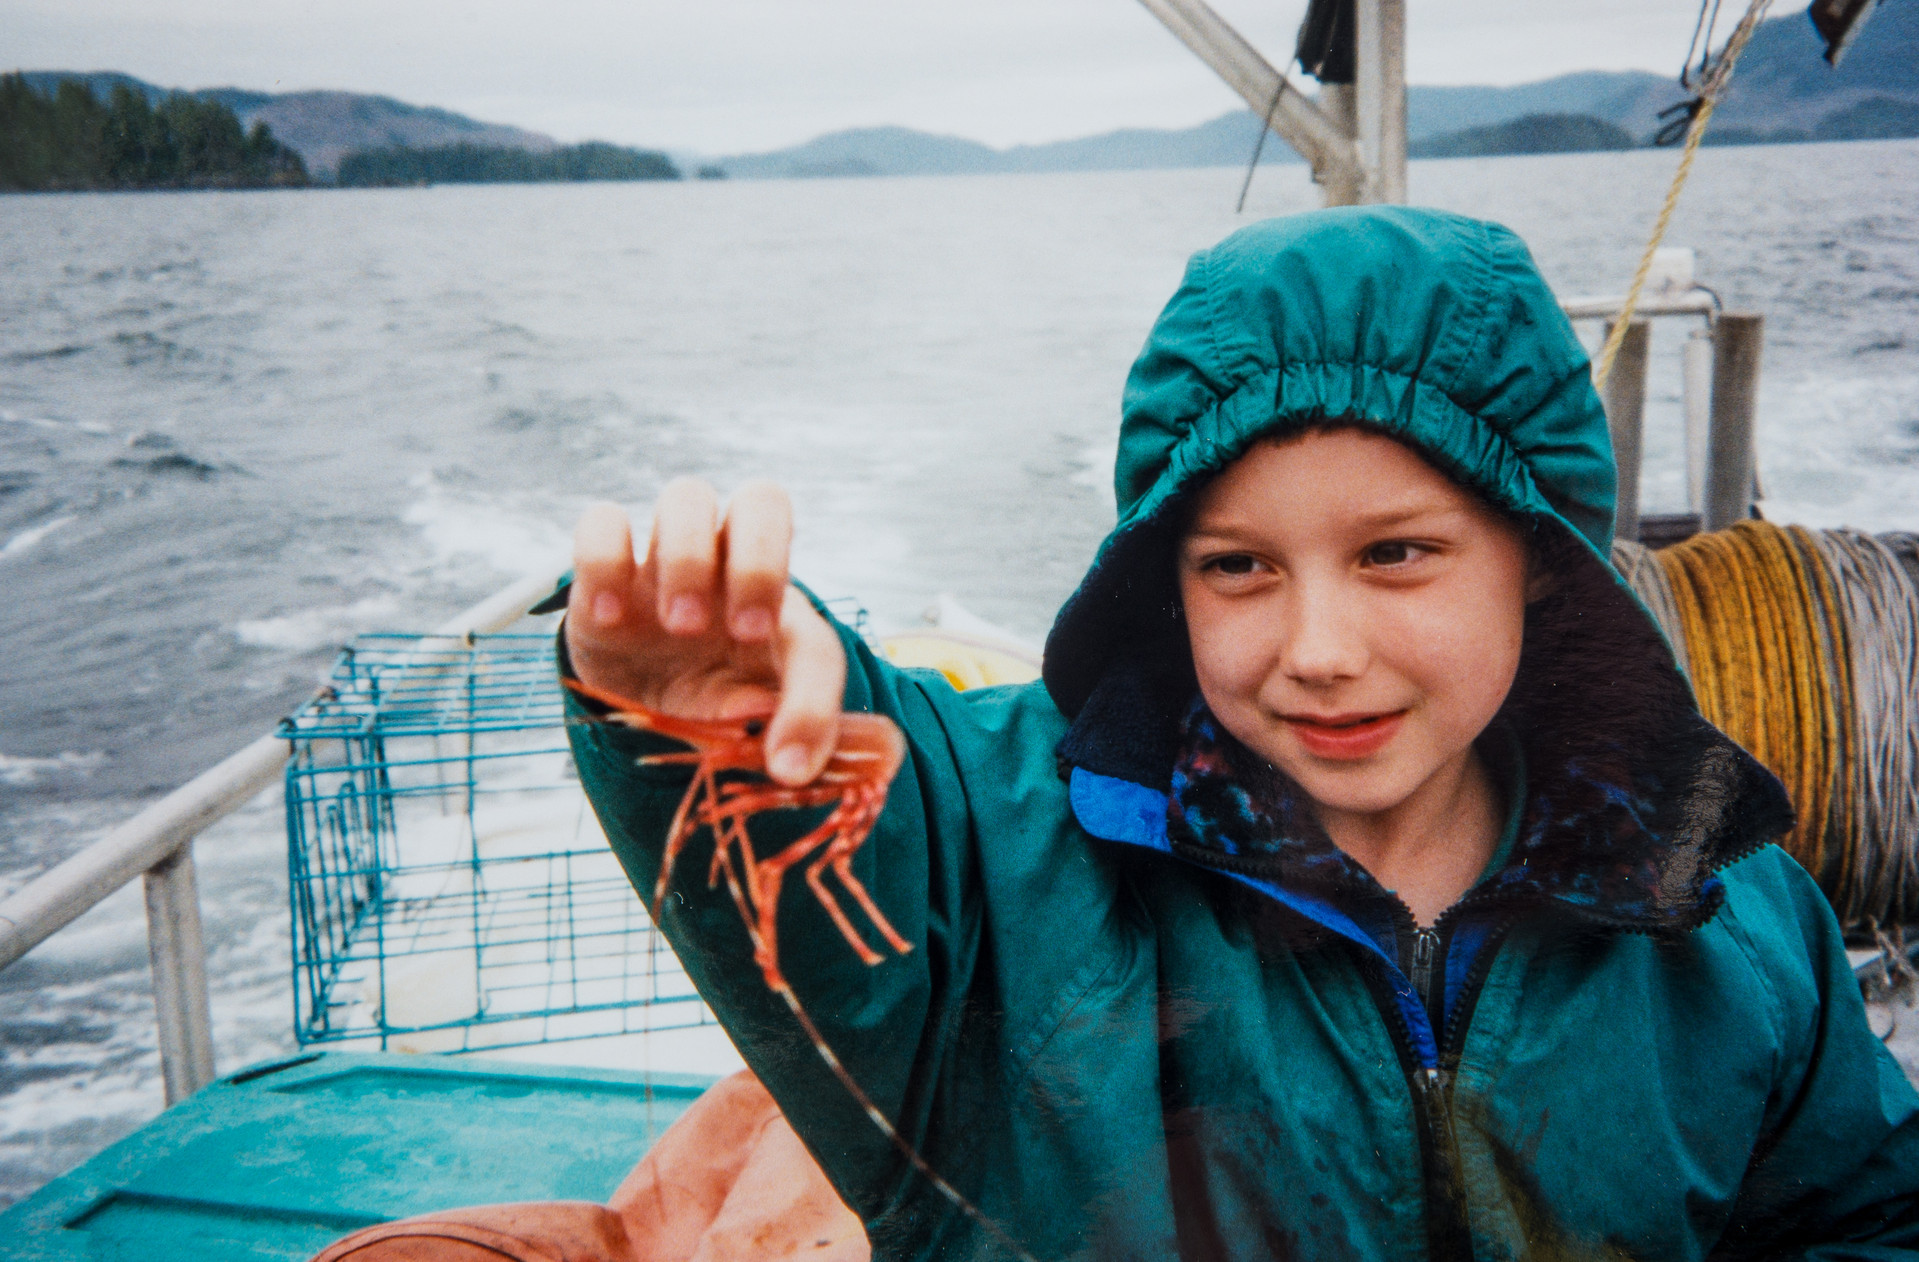 Ethan Cook with Shrimp